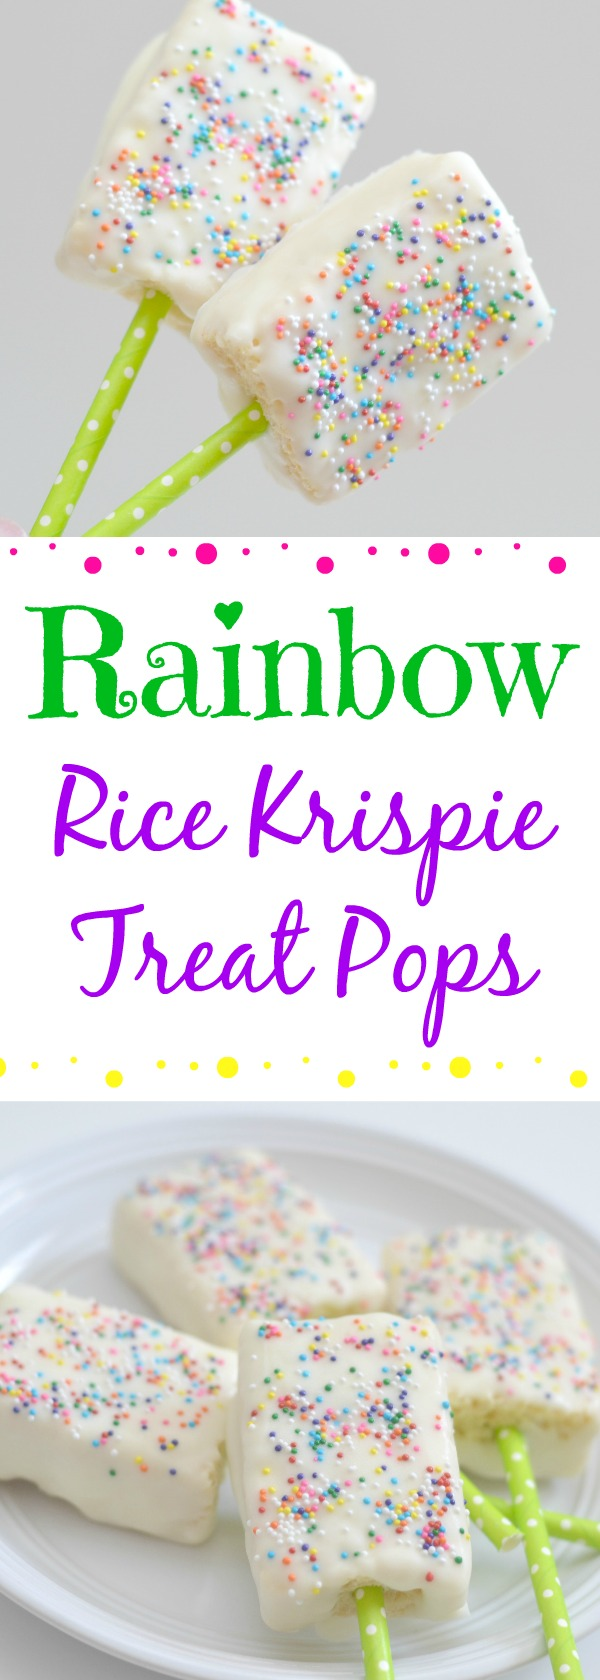 Rainbow Rice Krispie Treat Pops recipe, easy rainbow desserts, easy desserts, chocolate covered rice krispie treats, rice krispie treat pops, rainbow rice krispies, st. patricks day desserts, st. patricks day treats, easy st. patricks day recipes